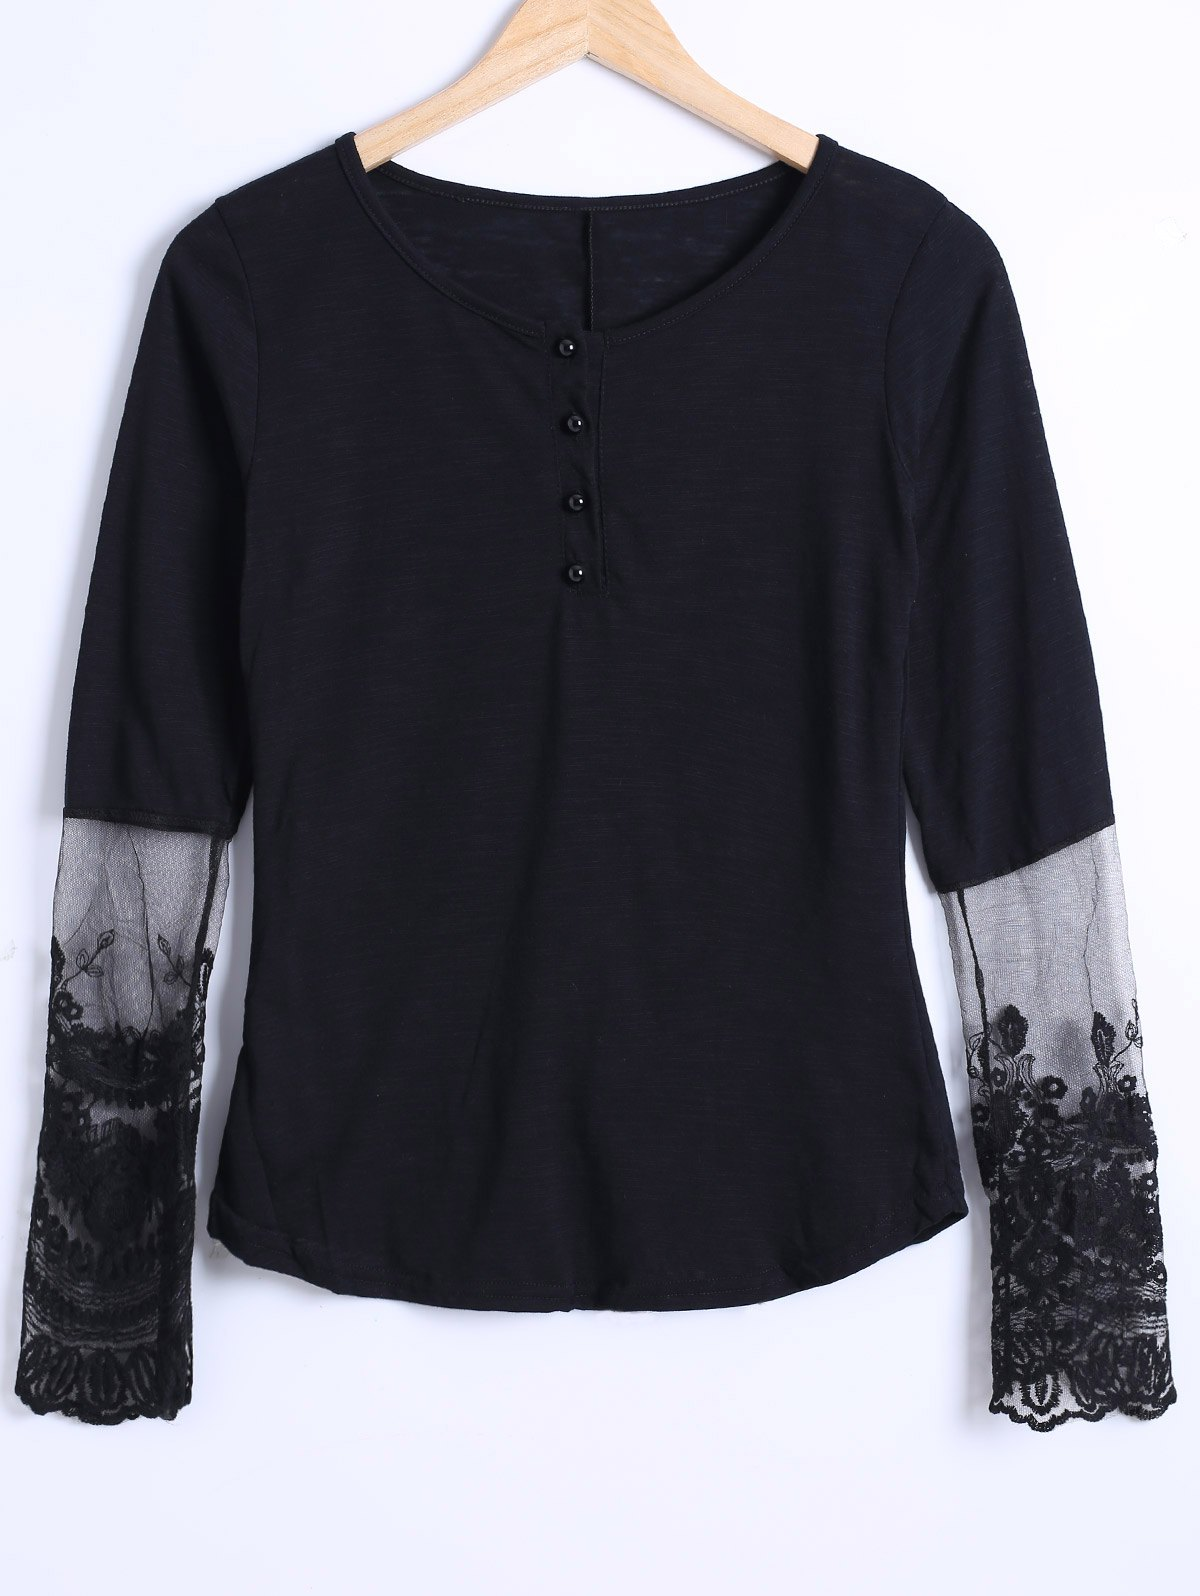 See-Through Lace Splicing Blouse